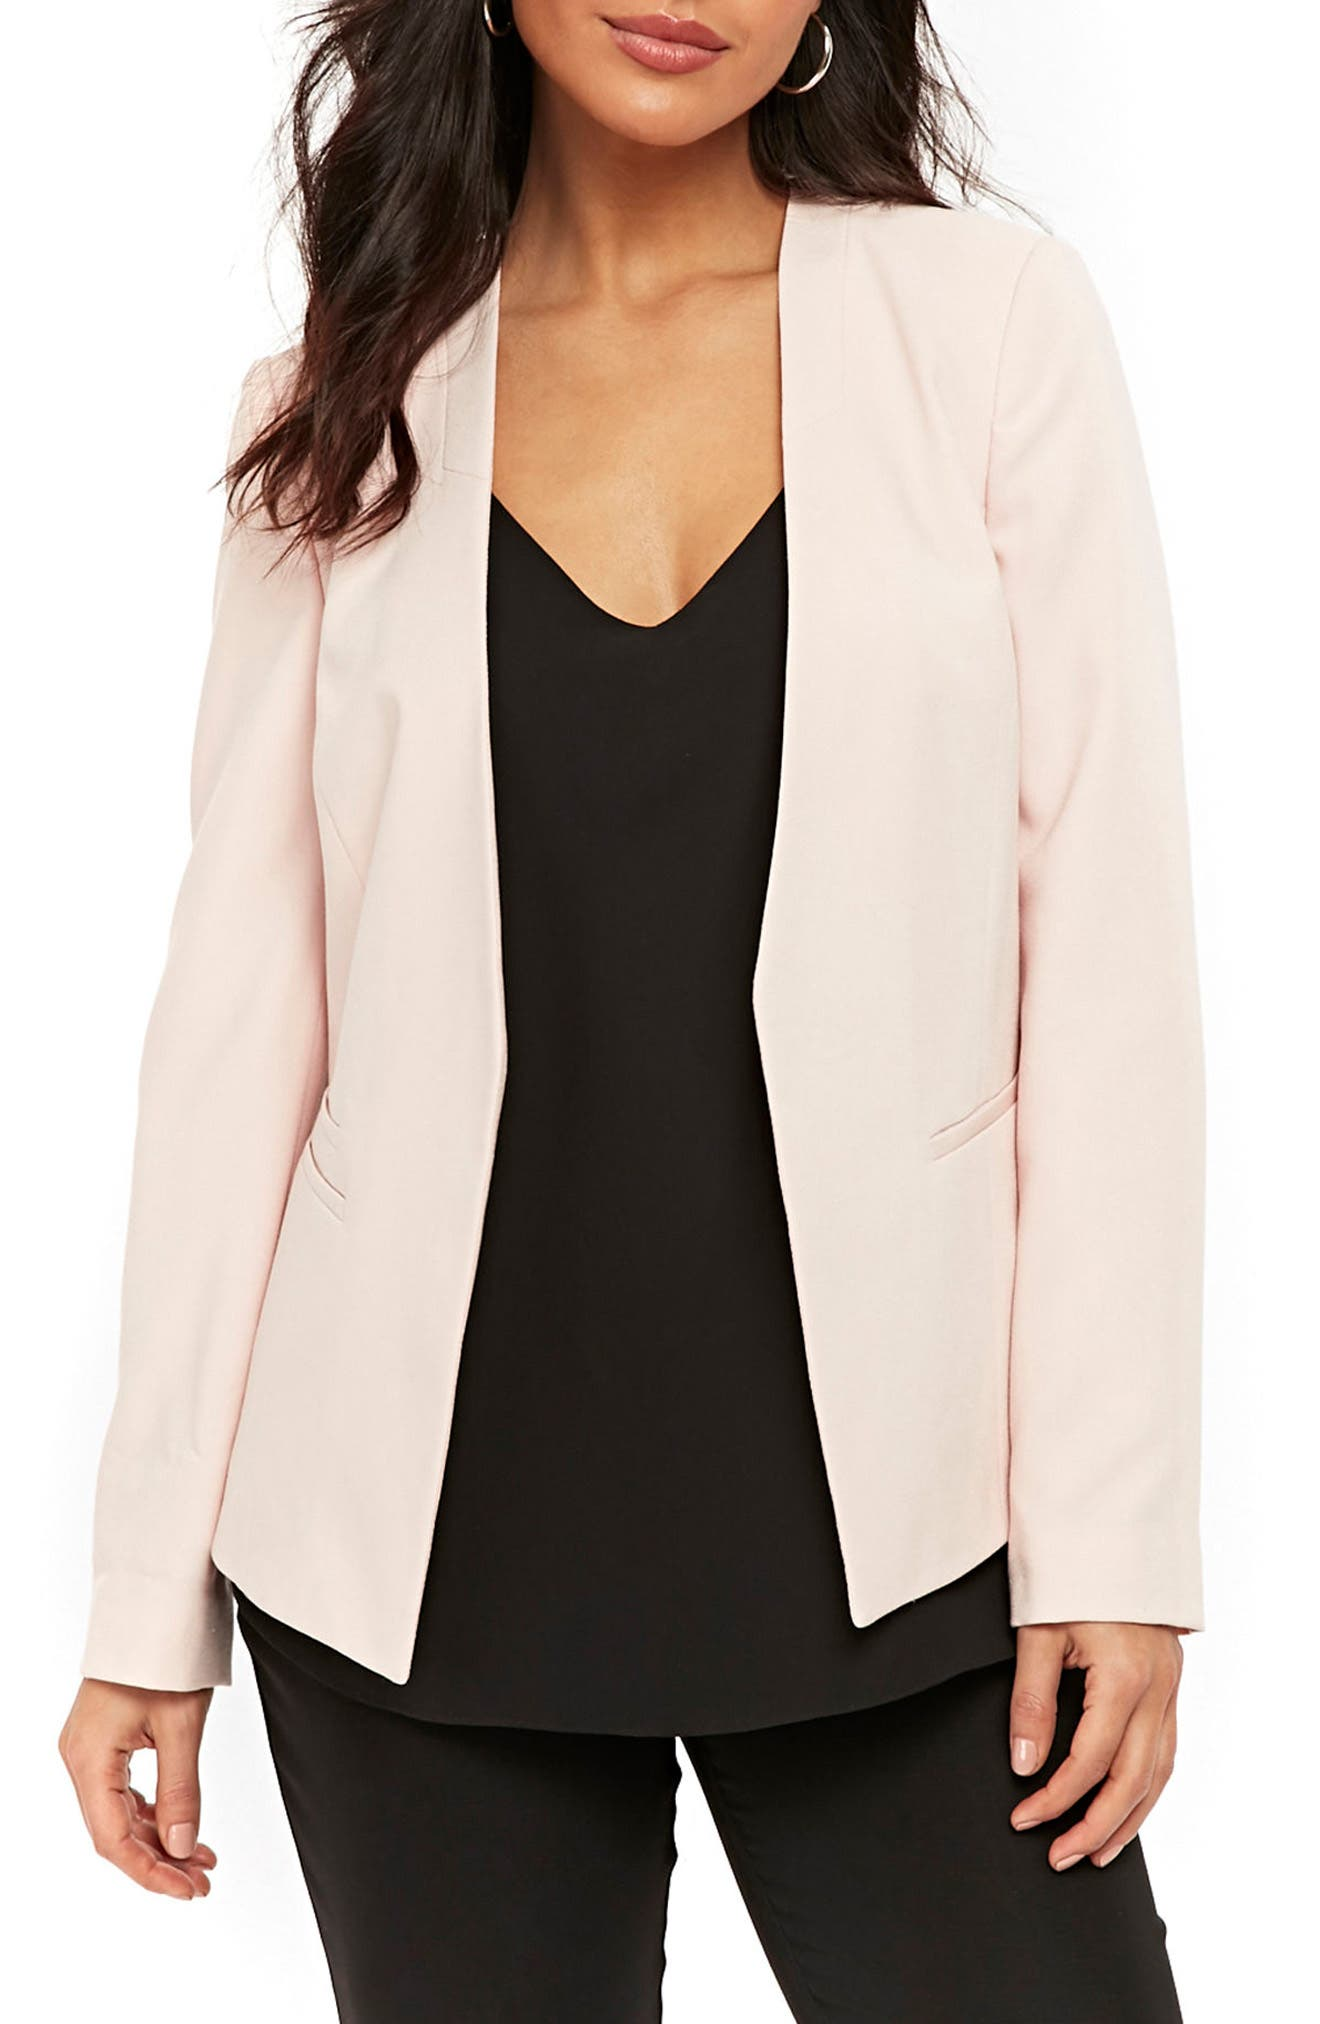 Giglio Edge to Edge Jacket,                         Main,                         color, Pink